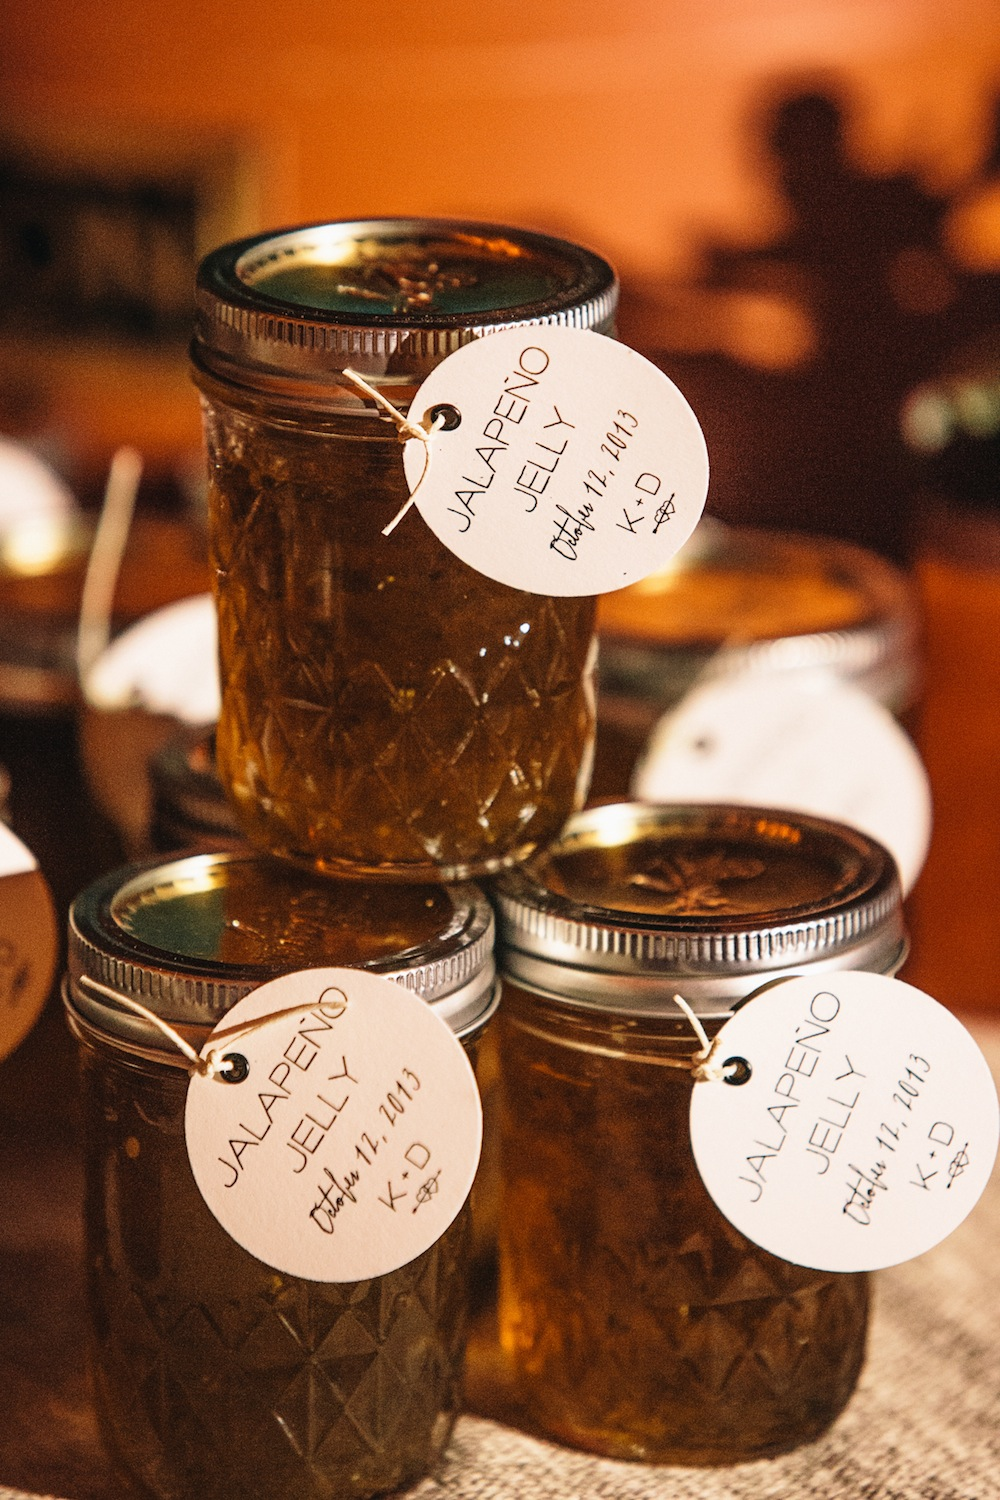 southern flavored jelly for wedding favors